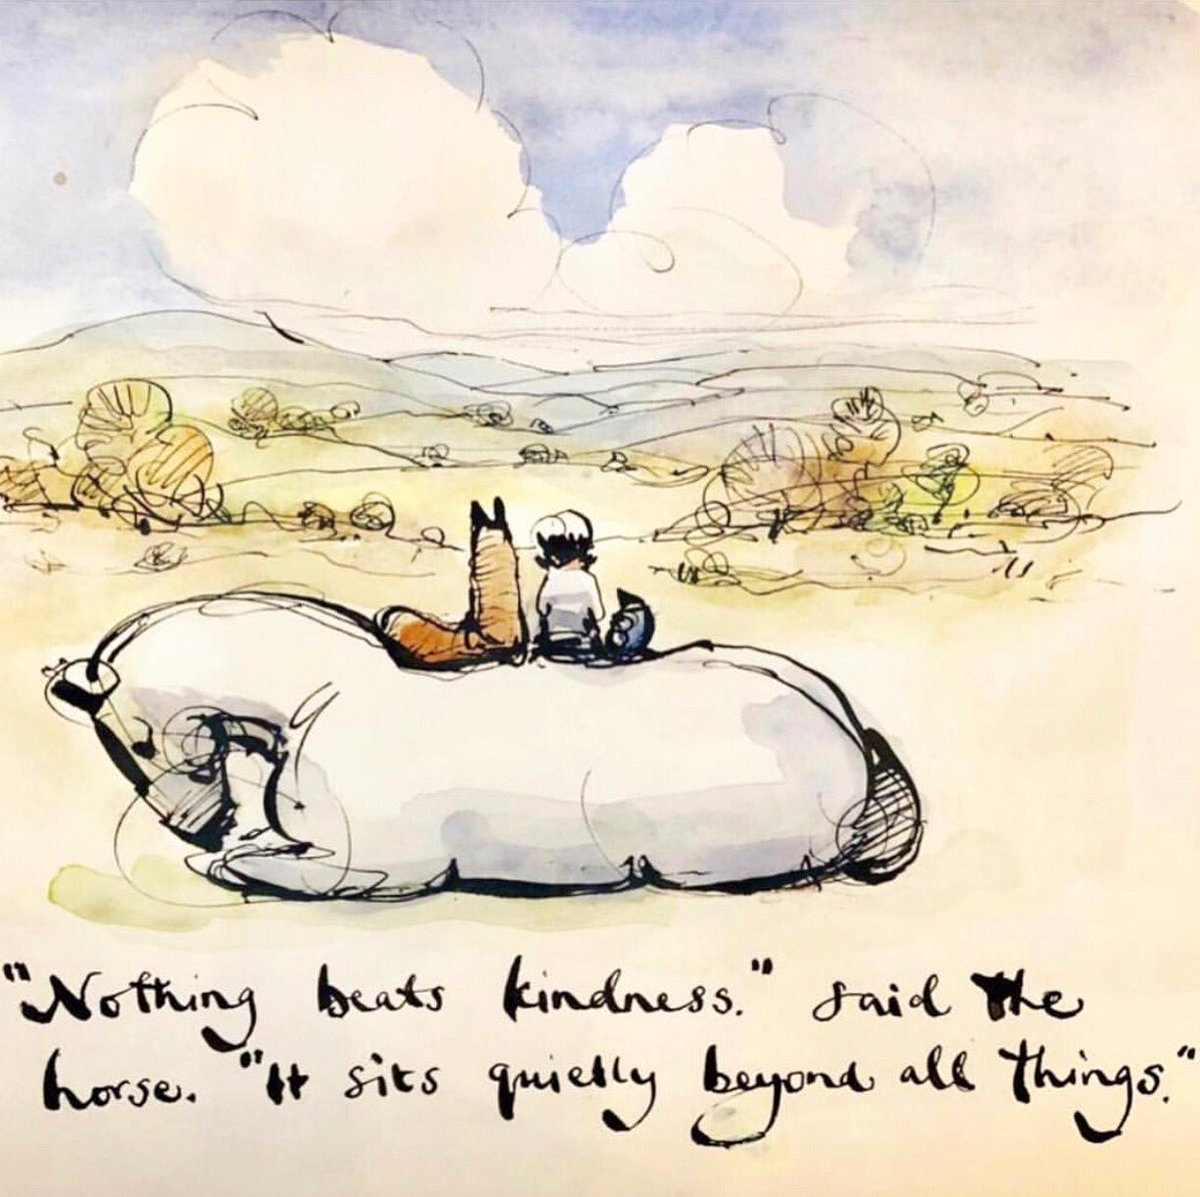 A drawing from the book as it's world kindness day today.